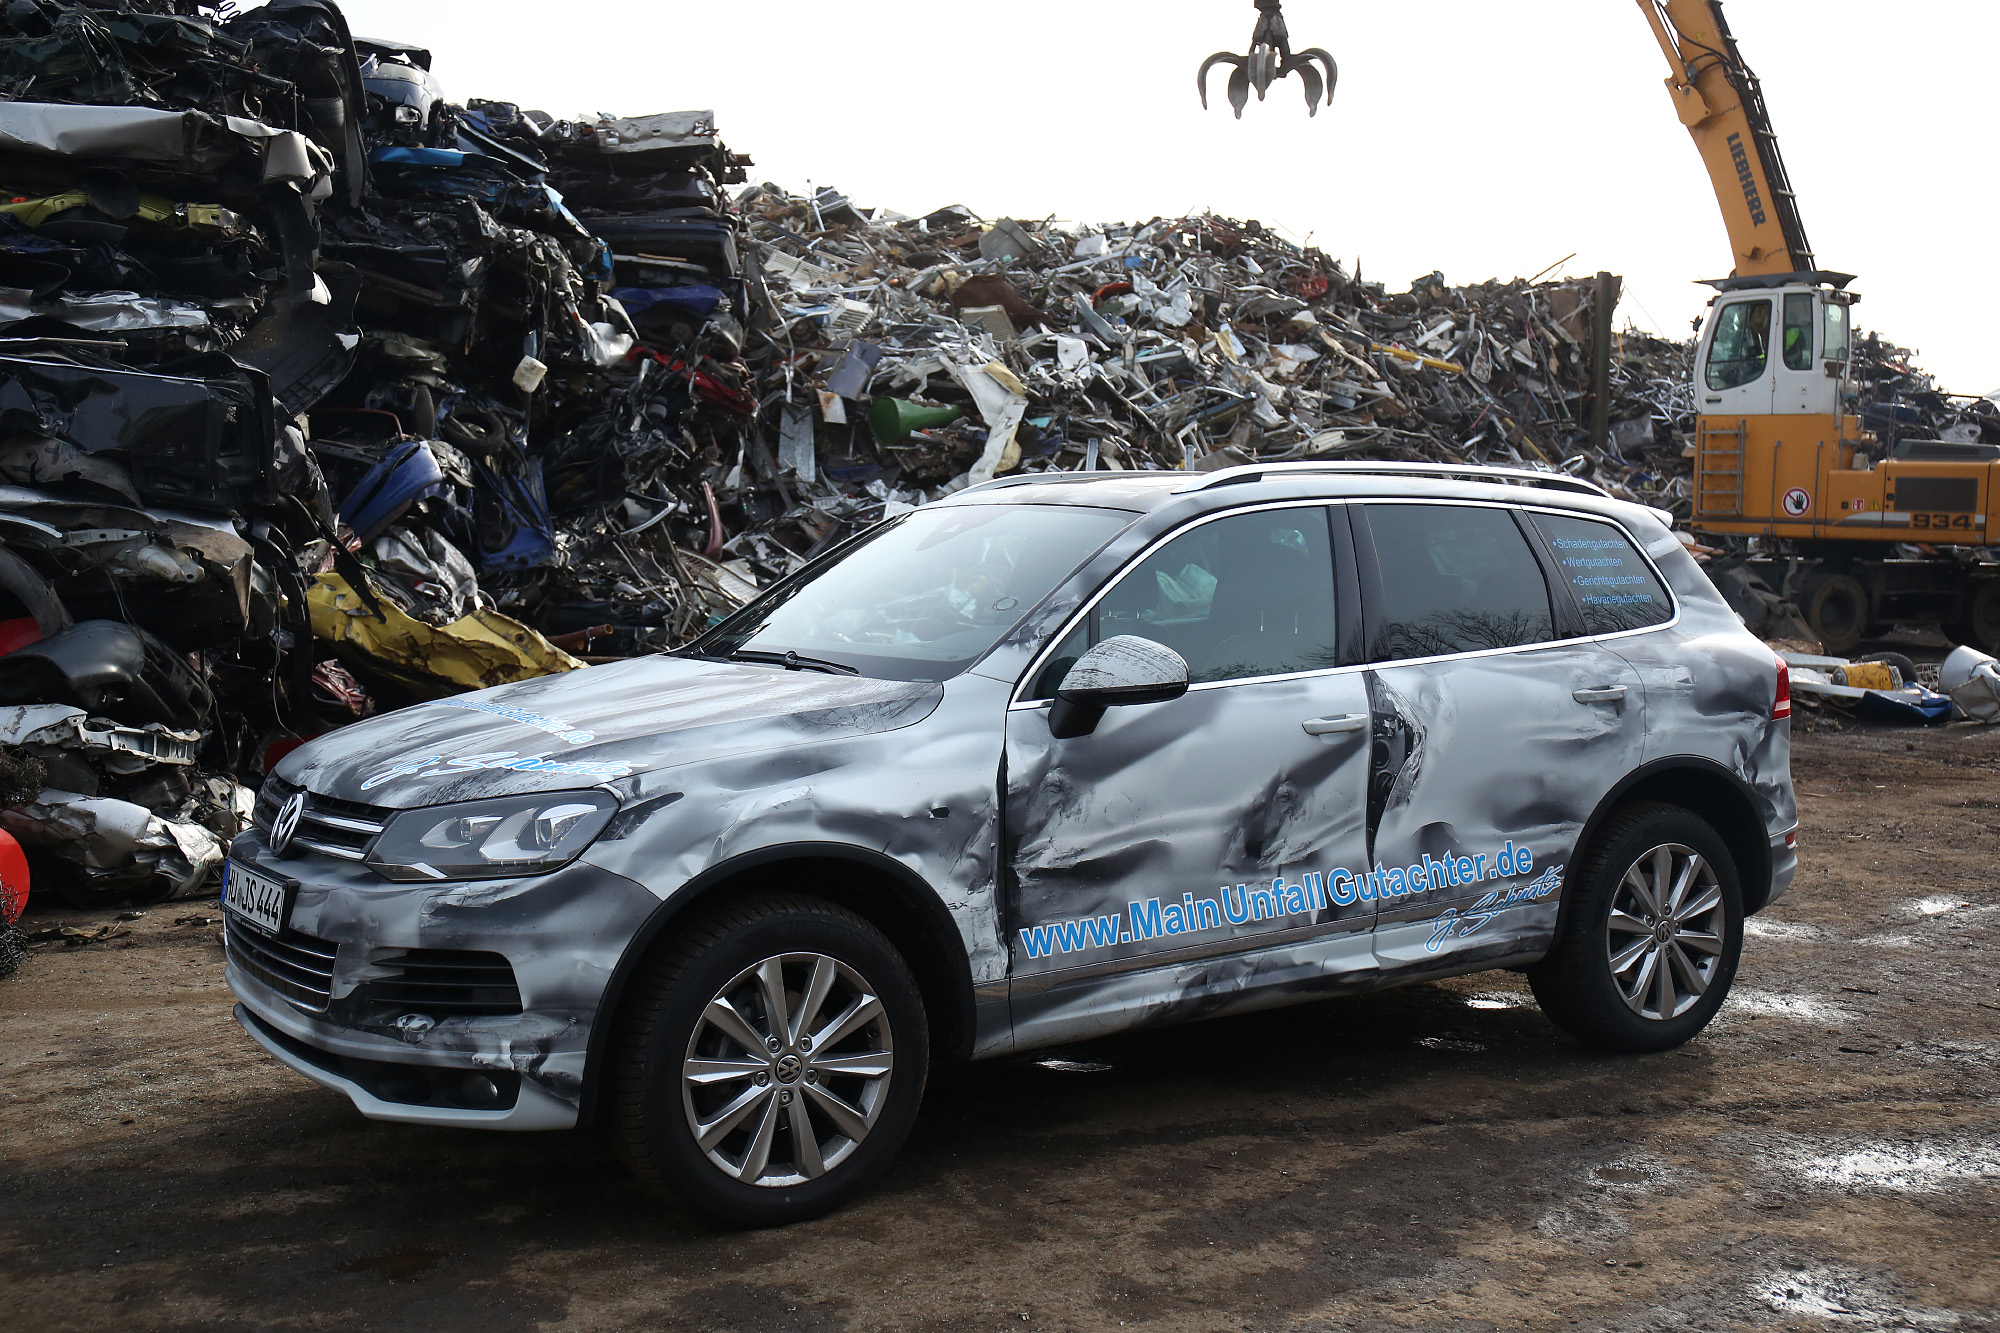 💥 Accident battered Touareg 💥